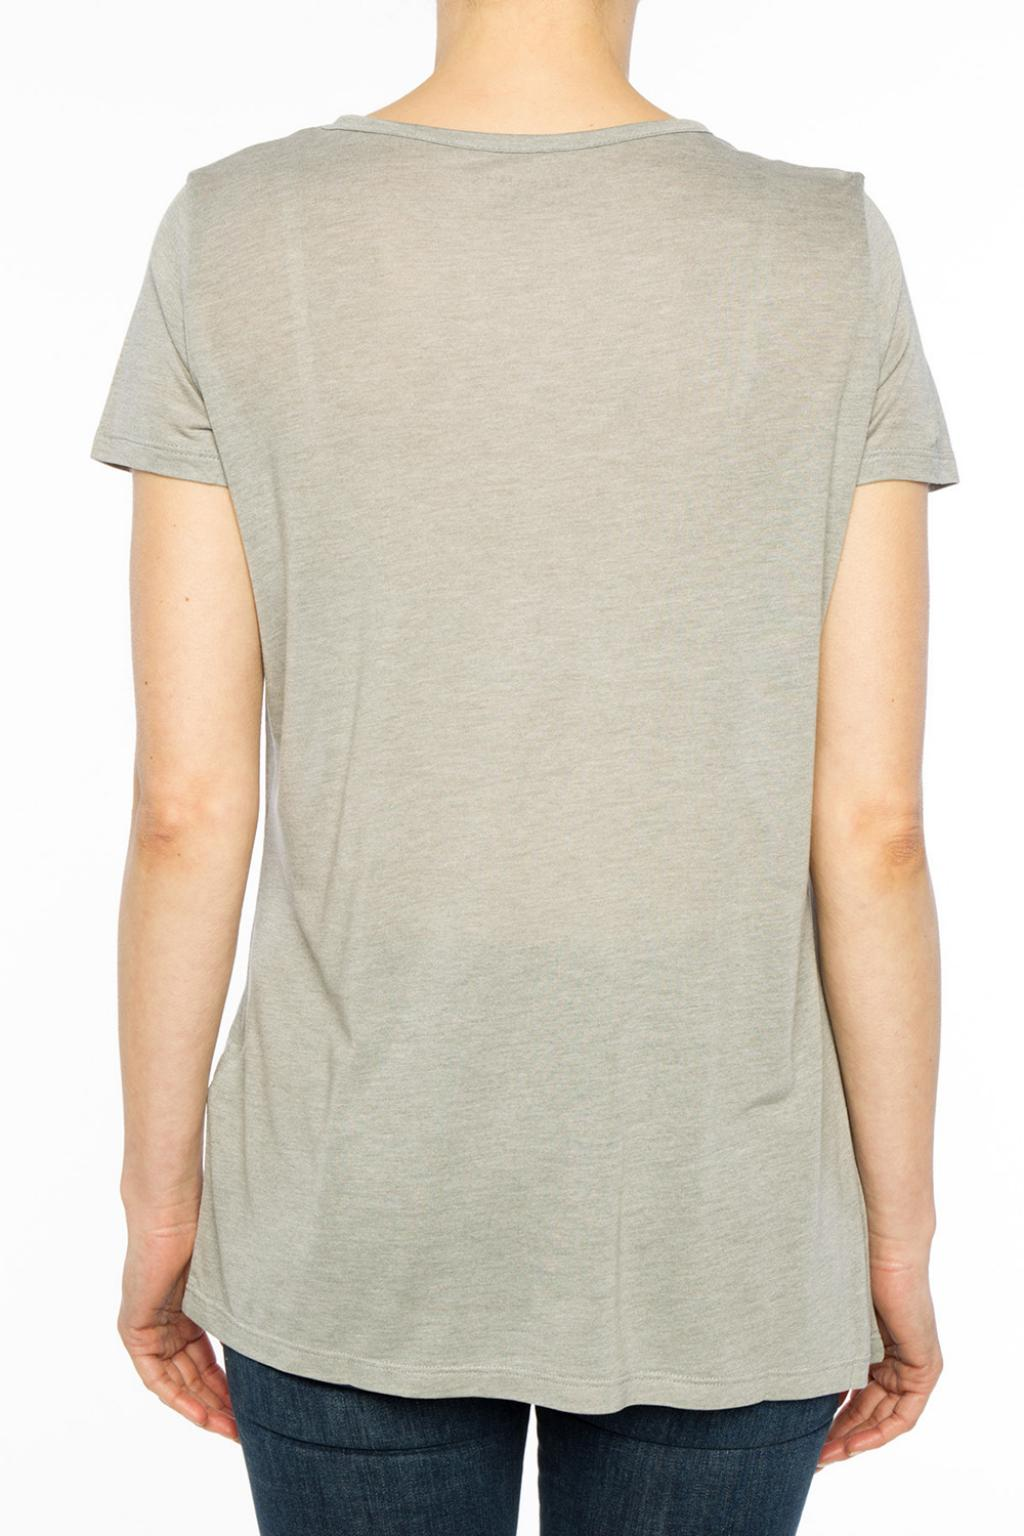 AllSaints 'Malin' V-neck T-shirt